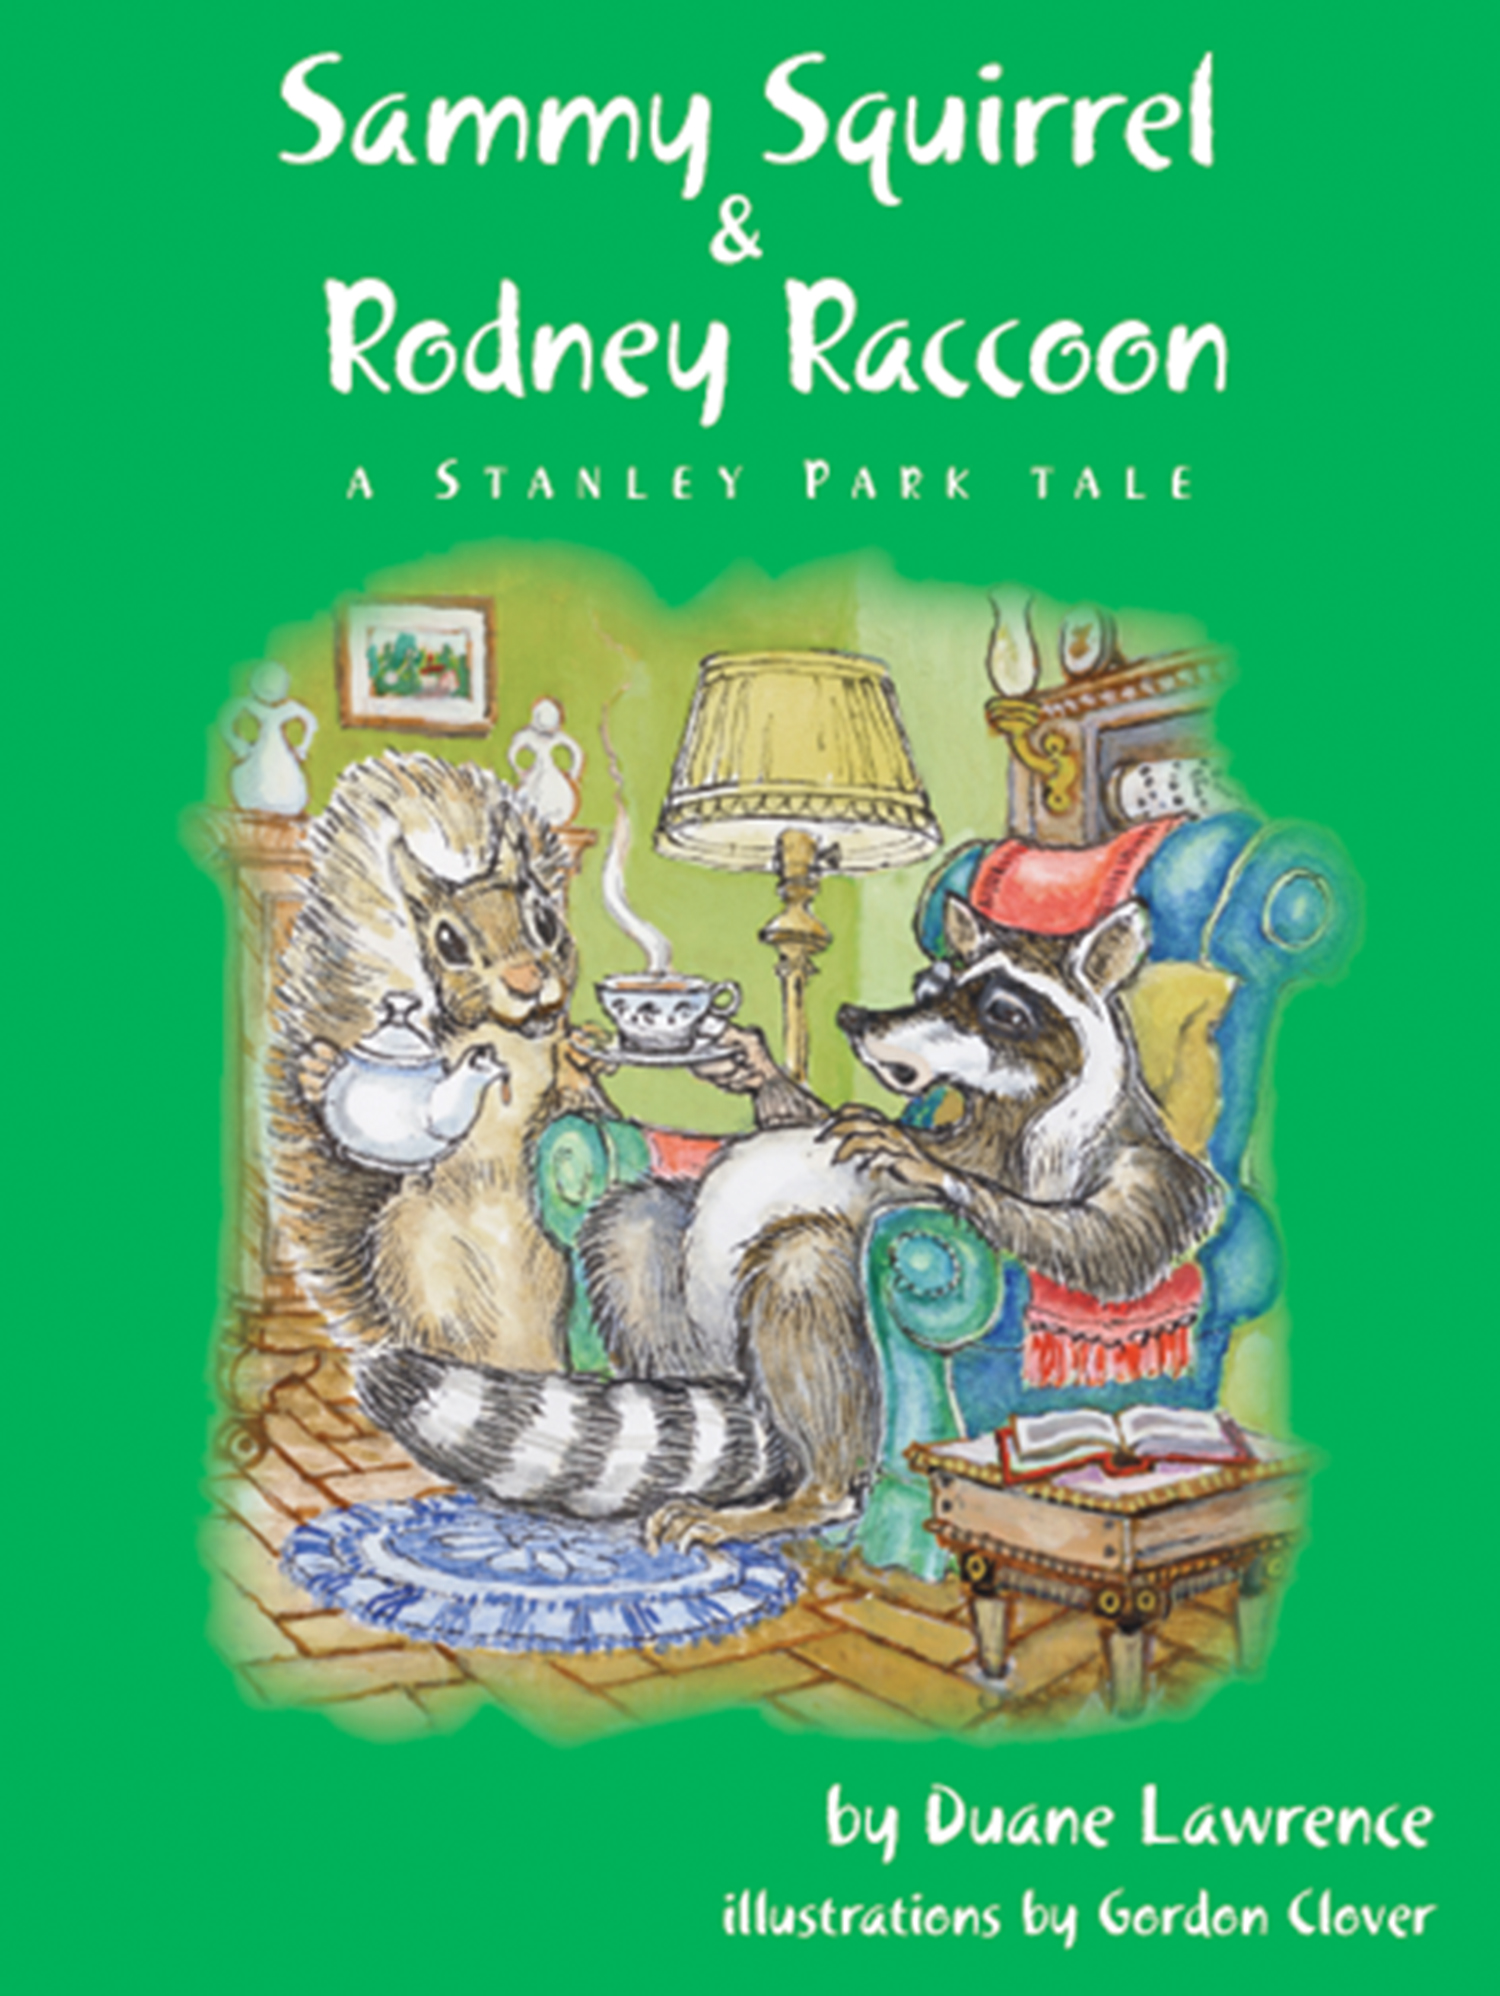 Rodney Raccoon and Sammy Squirrel Book Cover